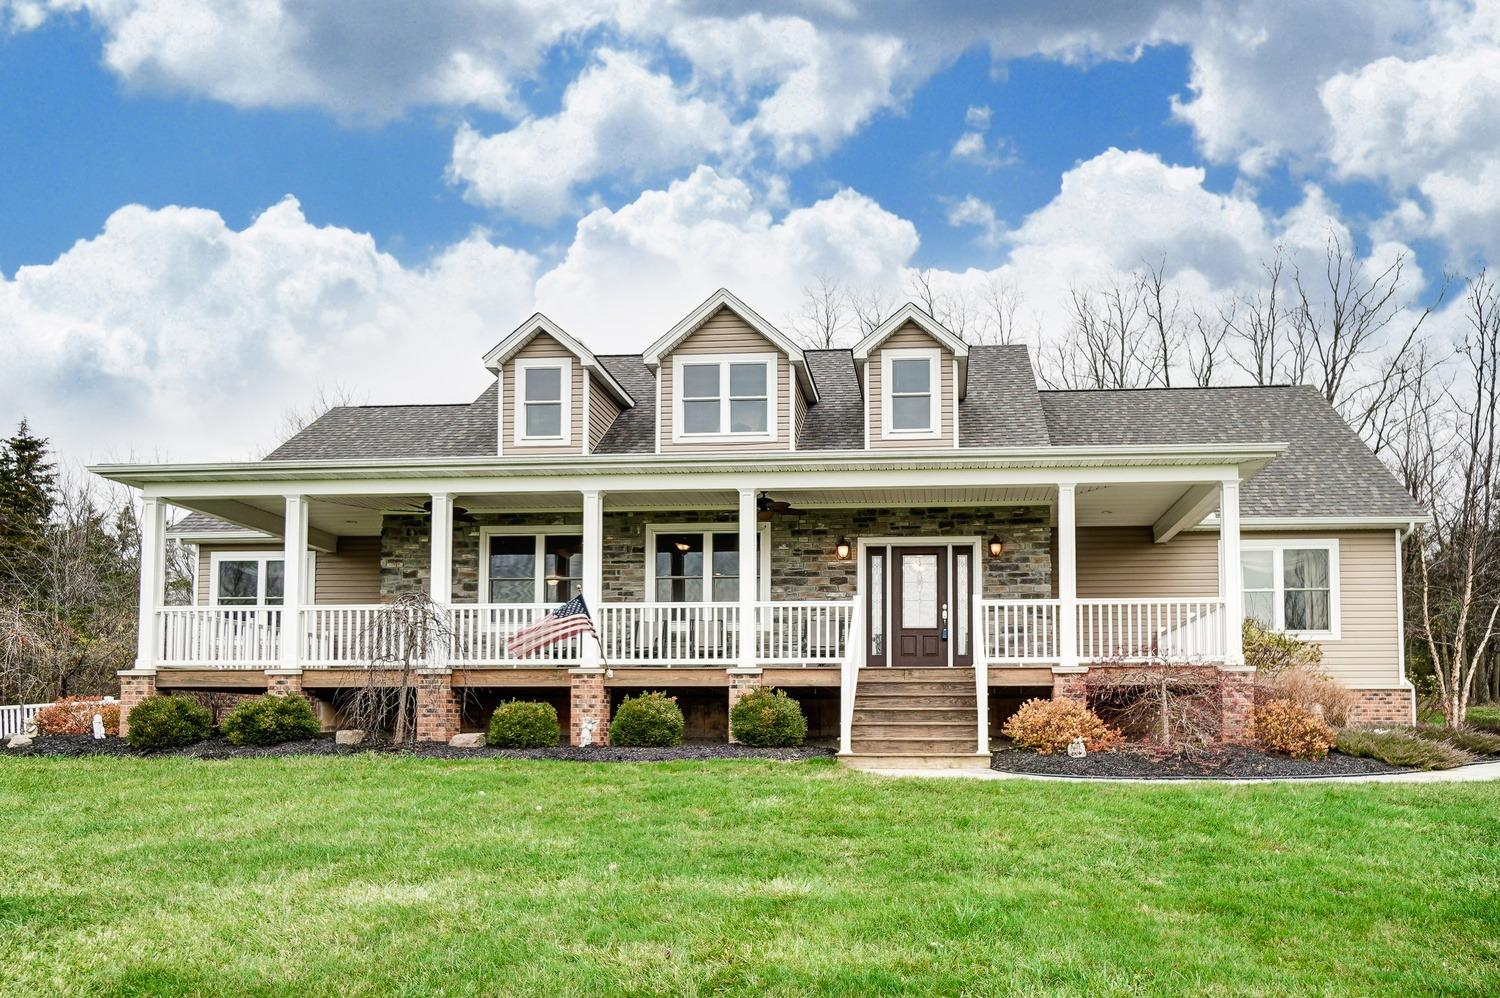 1566 Oxford Middletown Road, Milford Twp, OH 45013